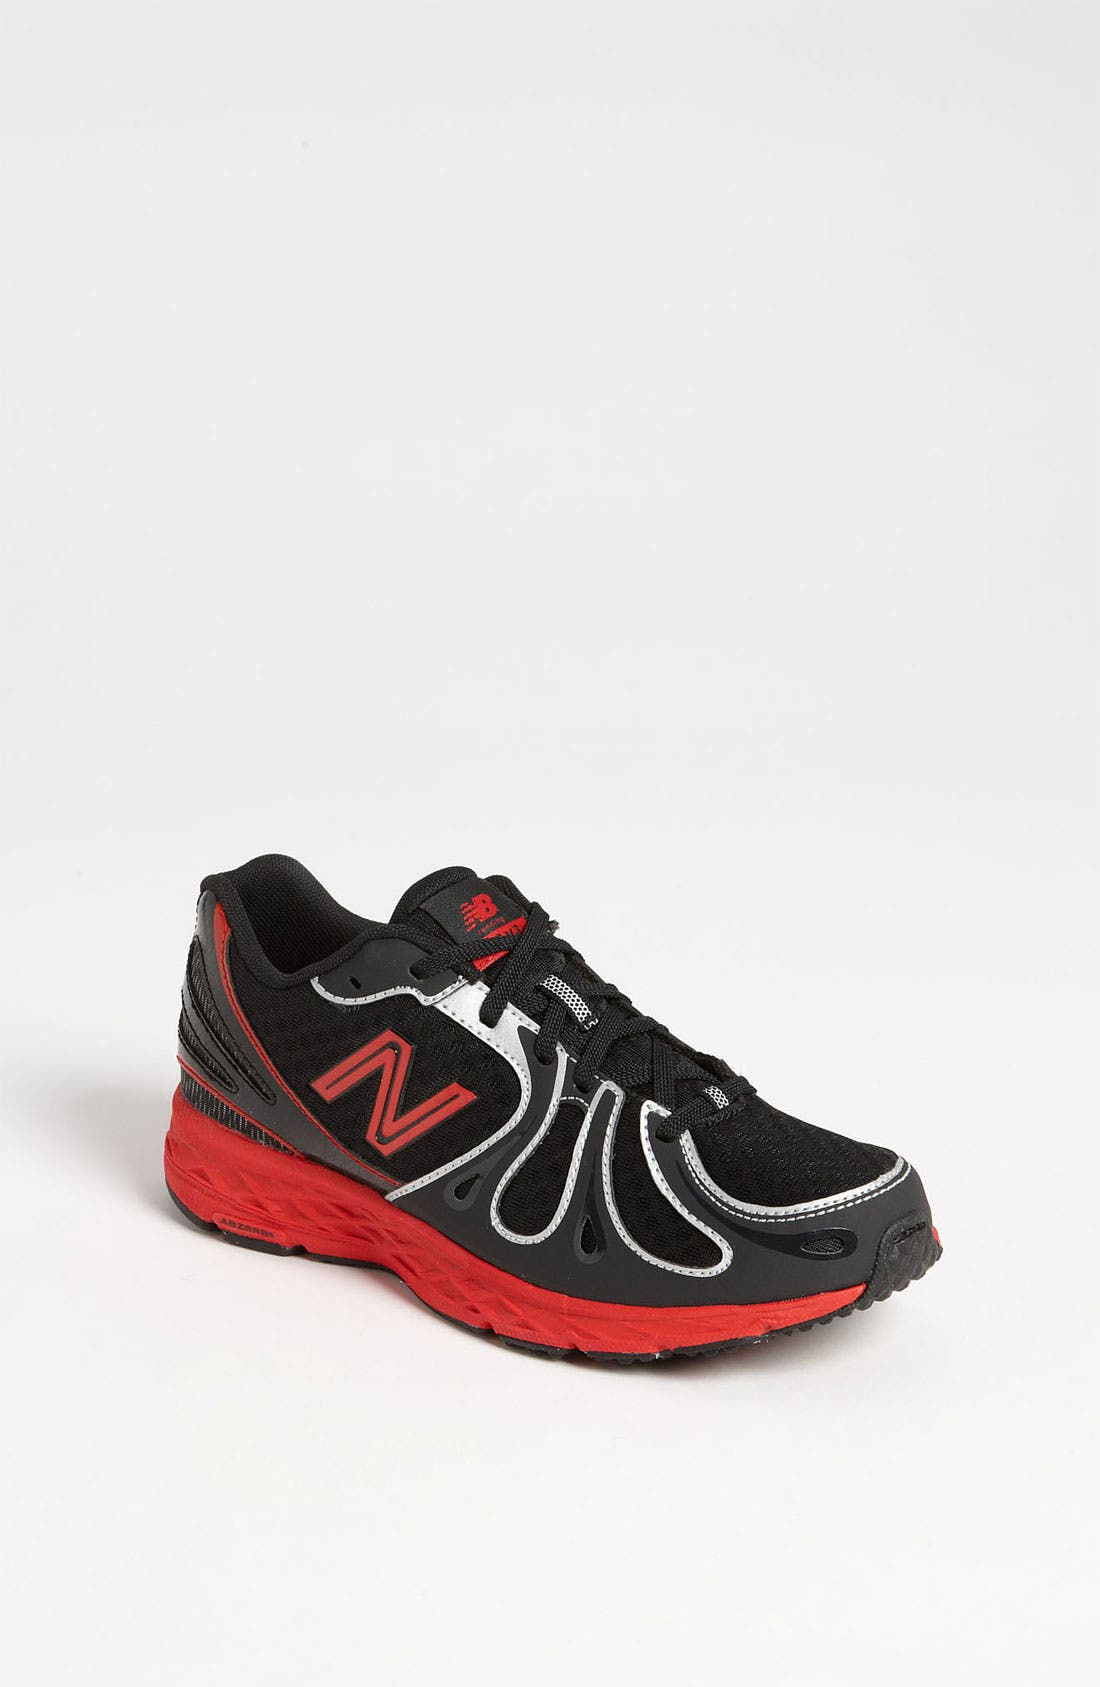 Alternate Image 1 Selected - New Balance '890' Sneaker (Toddler, Little Kid & Big Kid)